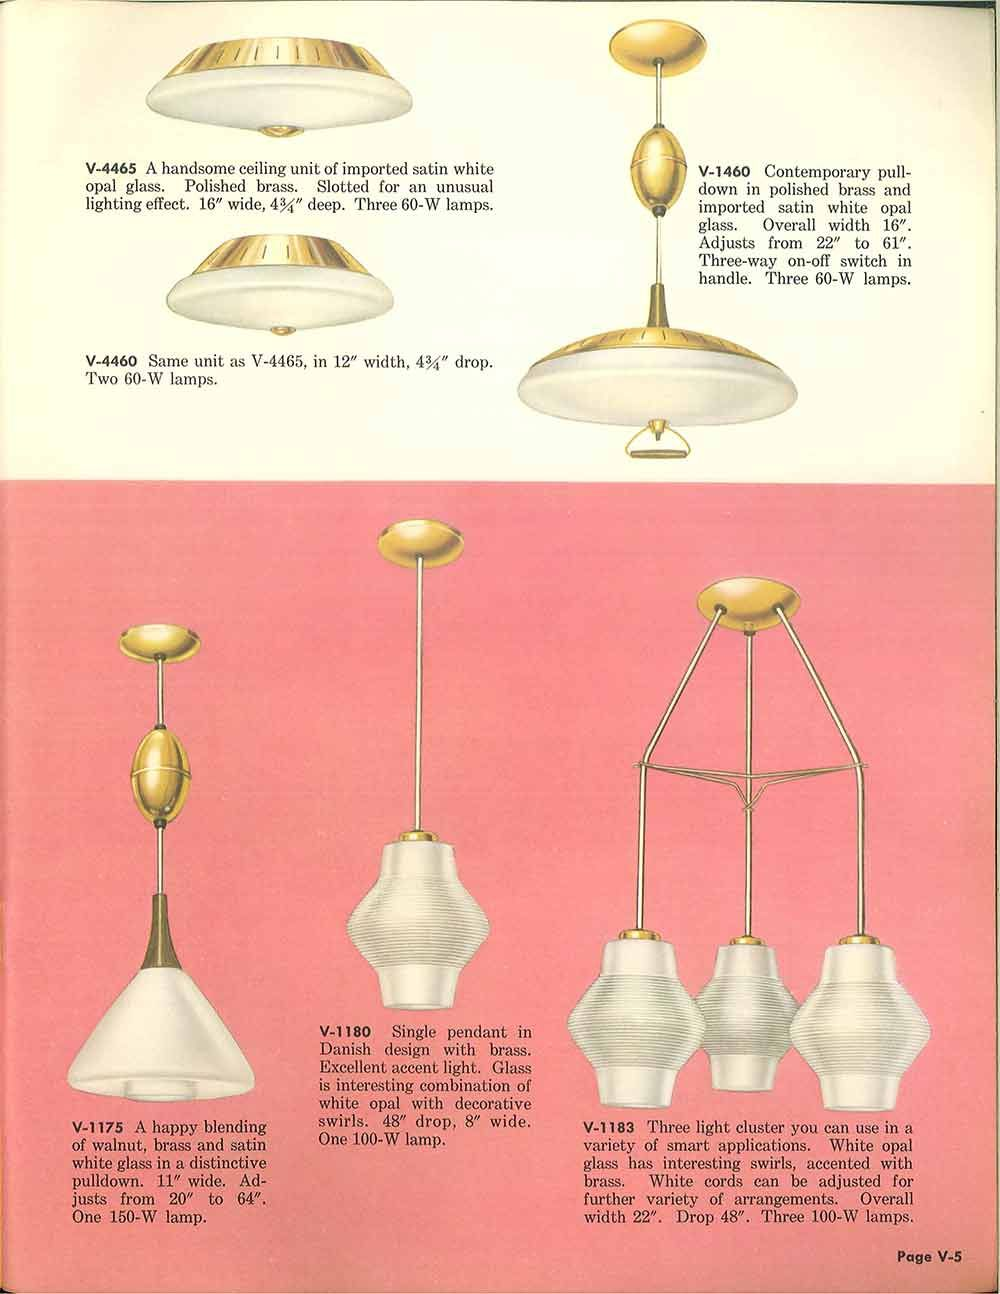 Vintage Virden Lighting 52 Page Catalog From 1959 Kitchen Lighting Fixtures Ceiling Kitchen Ceiling Lights Mid Century Modern Lamp Types of light fixtures in the ceiling